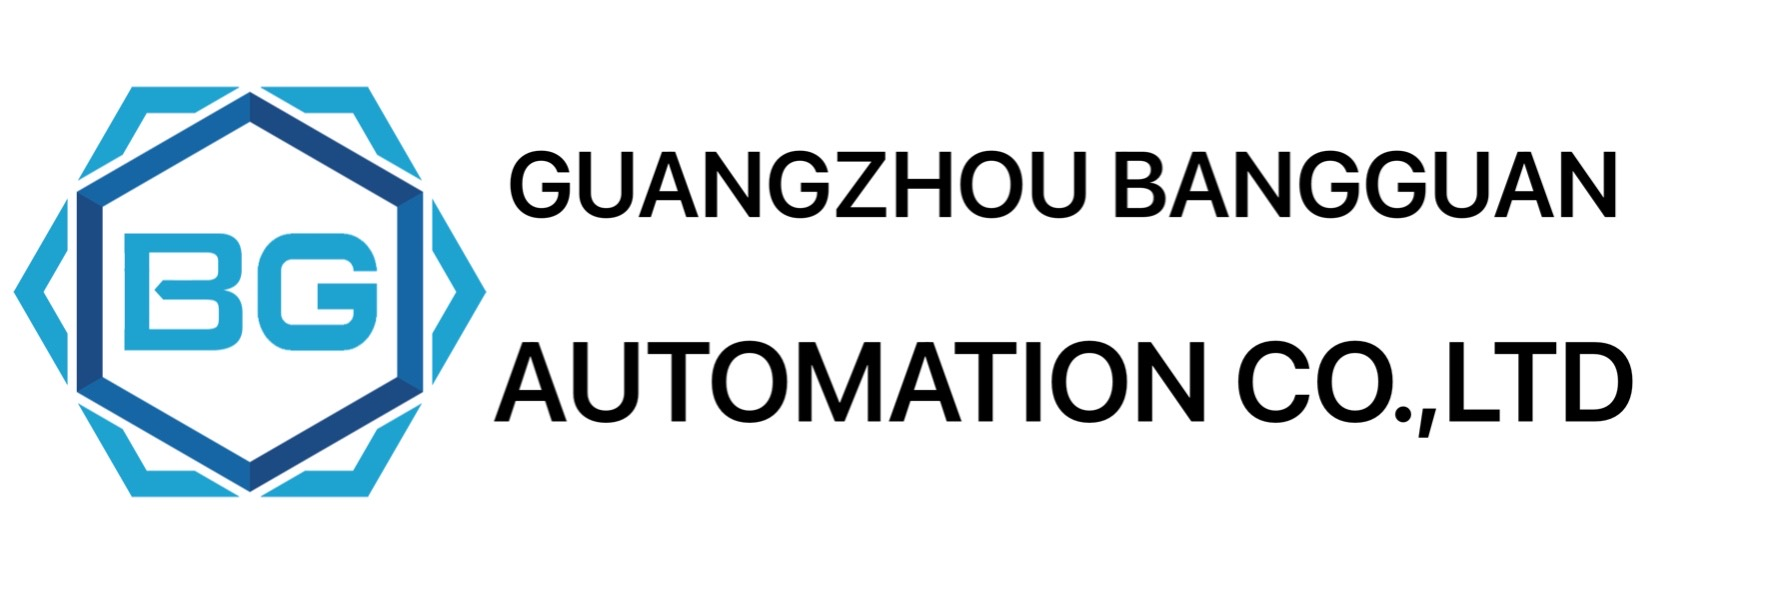 Classification of spraying machines - News - Suzhou BangGuan Automation Co., LTD.